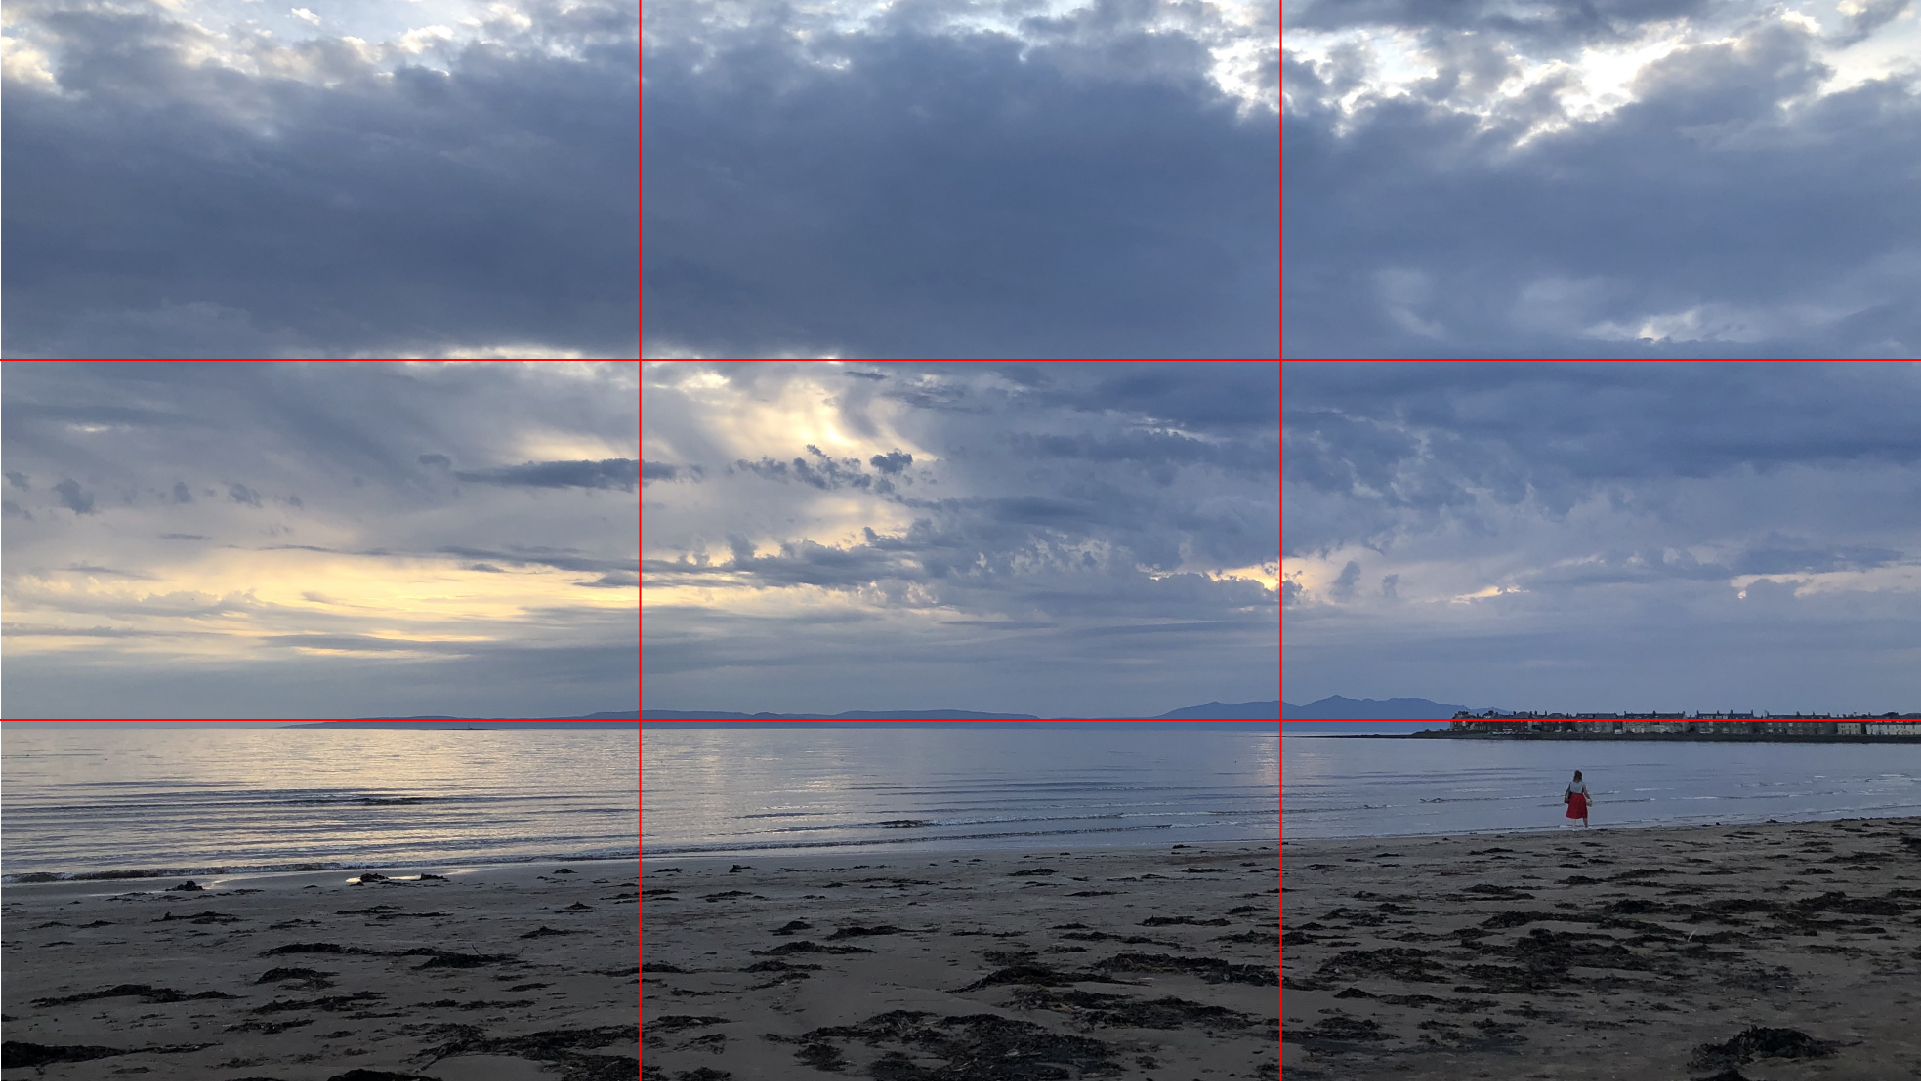 An example of good use of the 'rule of thirds'